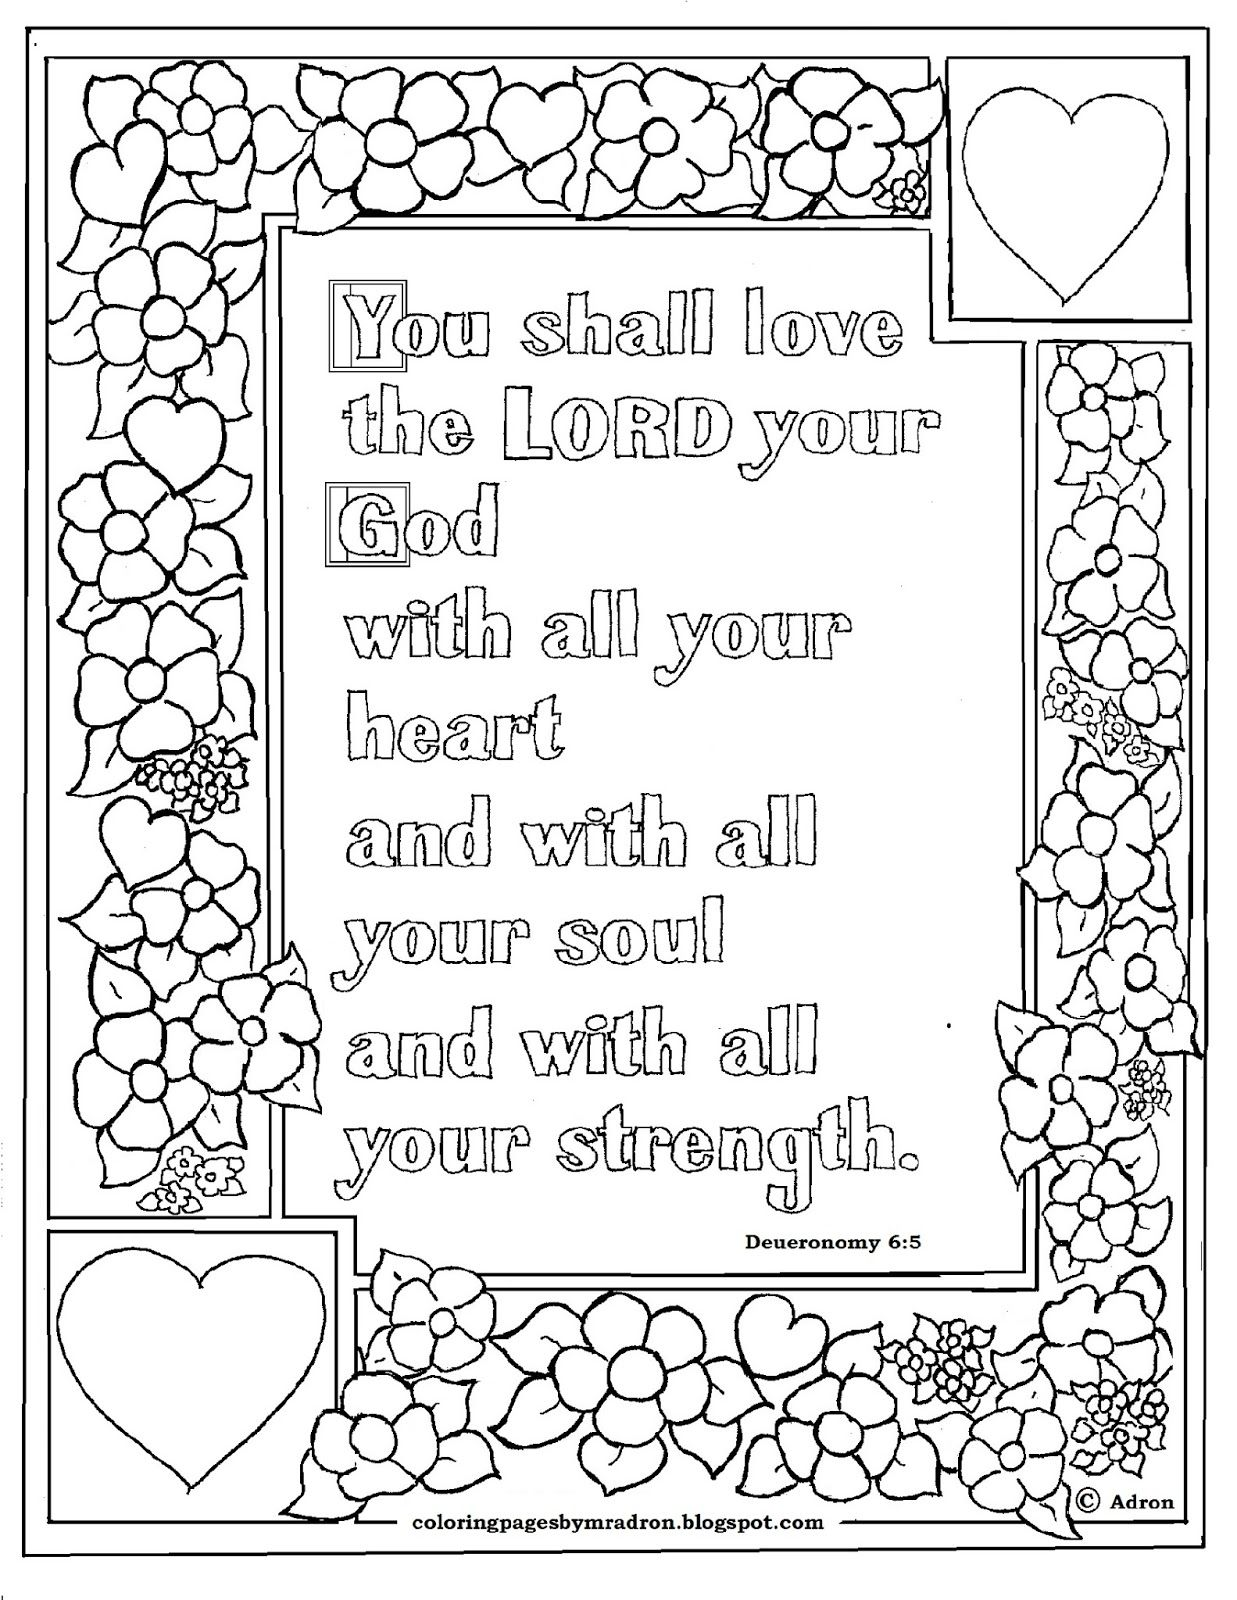 Coloring Pages For Kids 11 And Up To Print